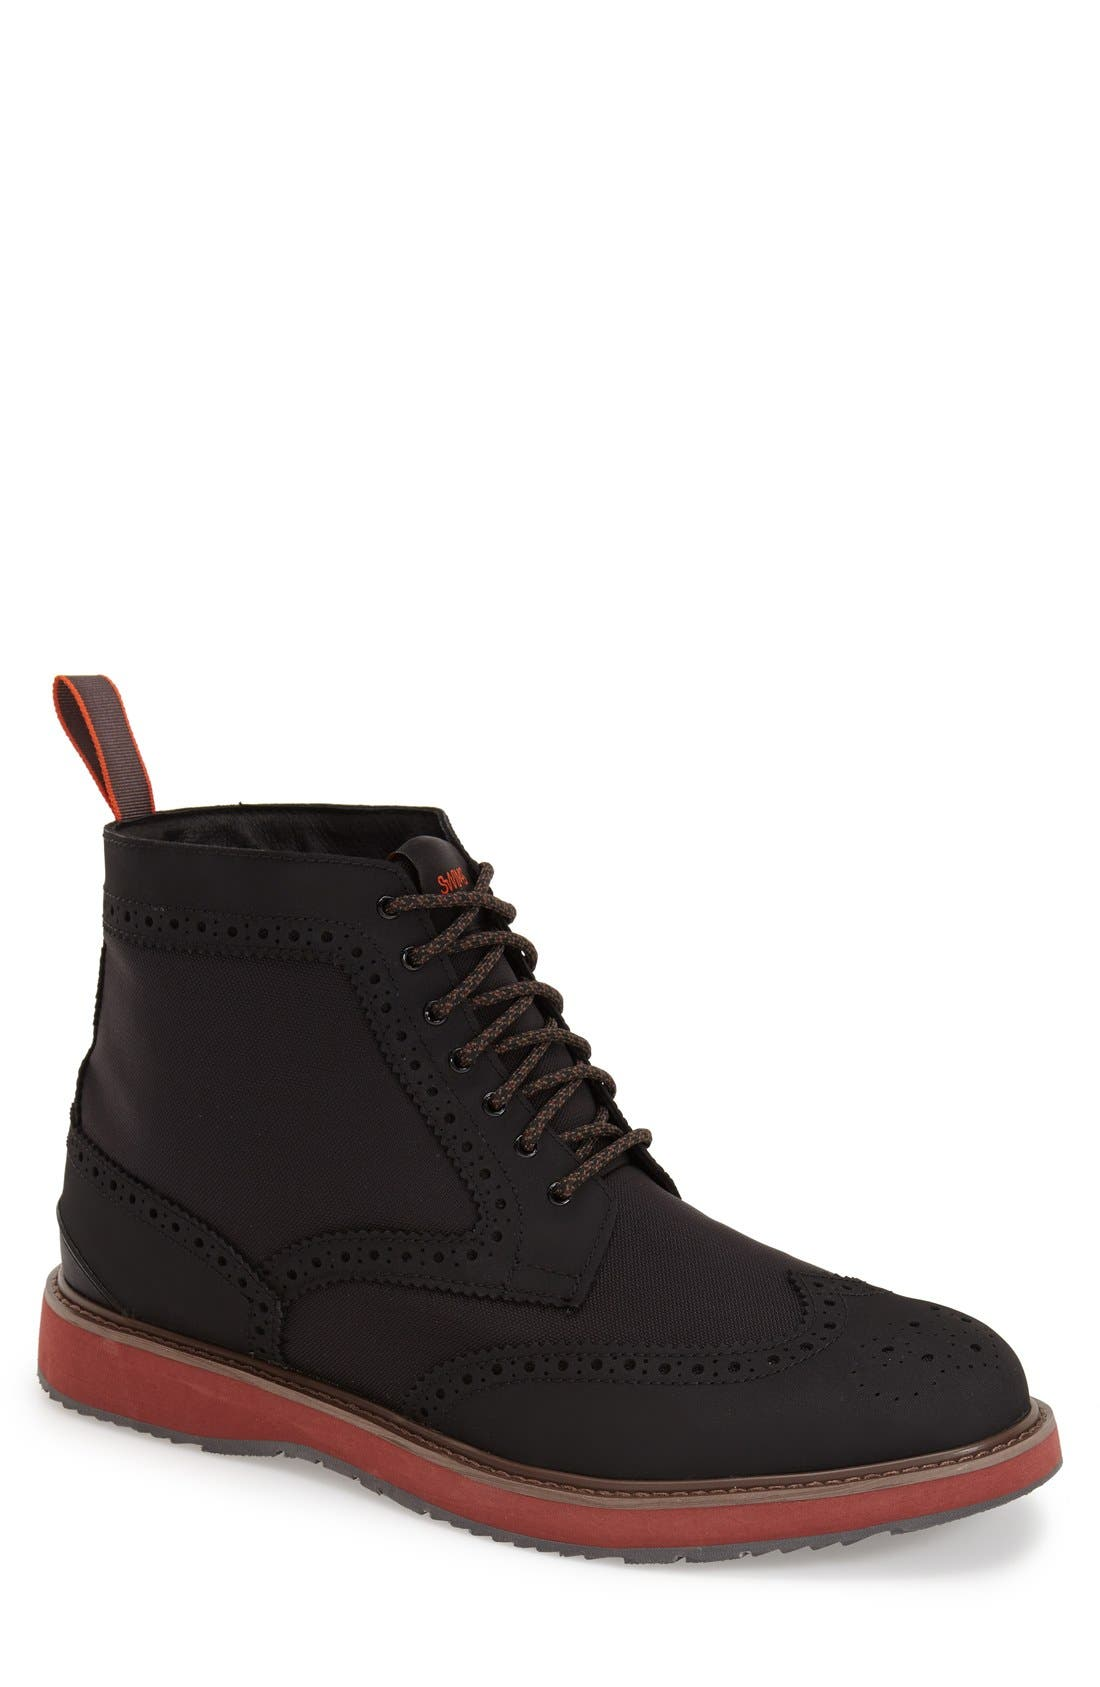 'Barry' Wingtip Boot,                         Main,                         color, Black